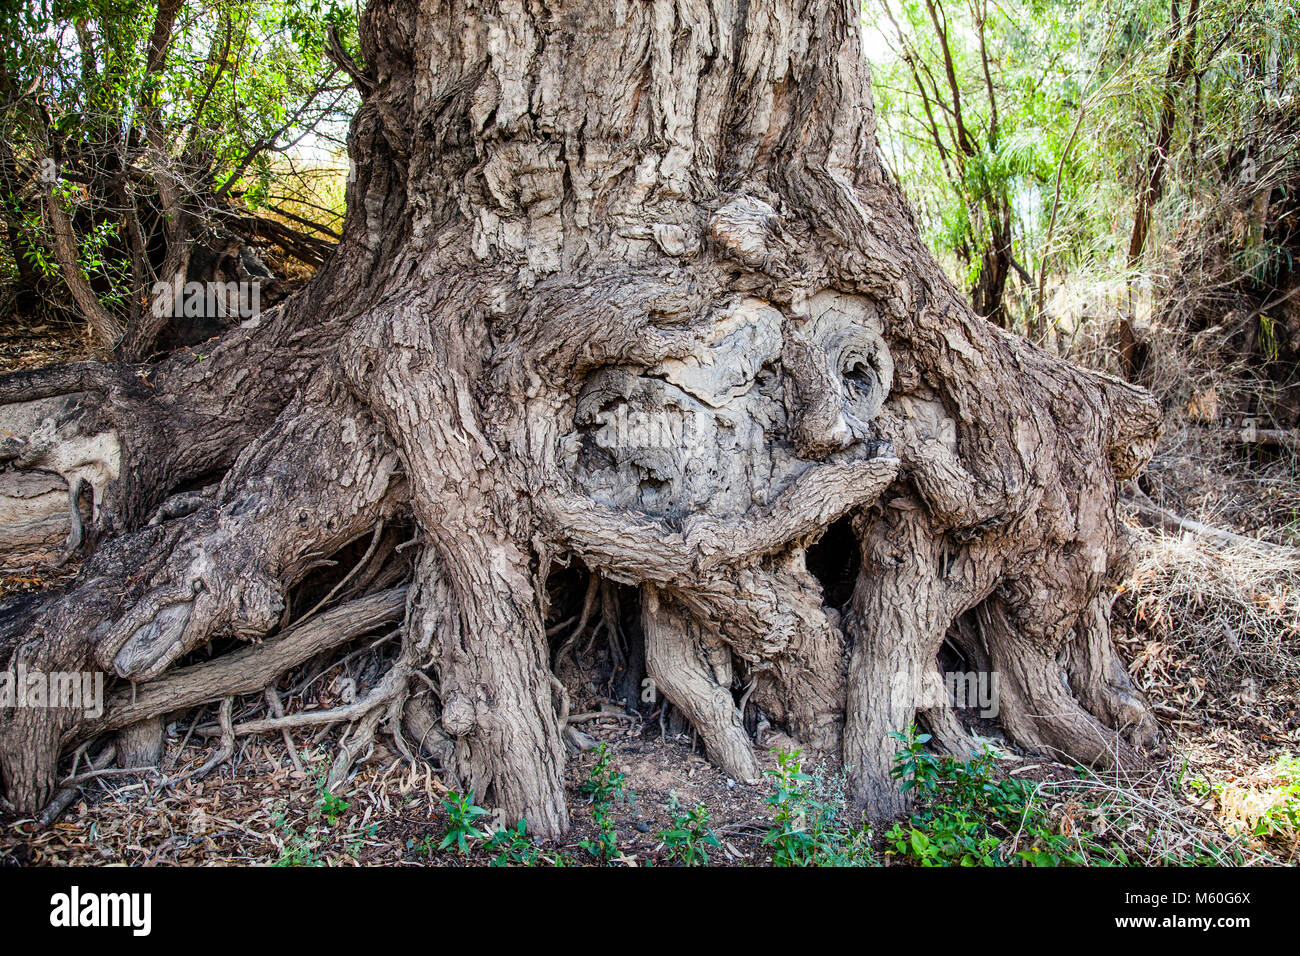 sculptured roots of a large gum tree on the banks of the Darling River at North Bourke, North West New South Wales, - Stock Image